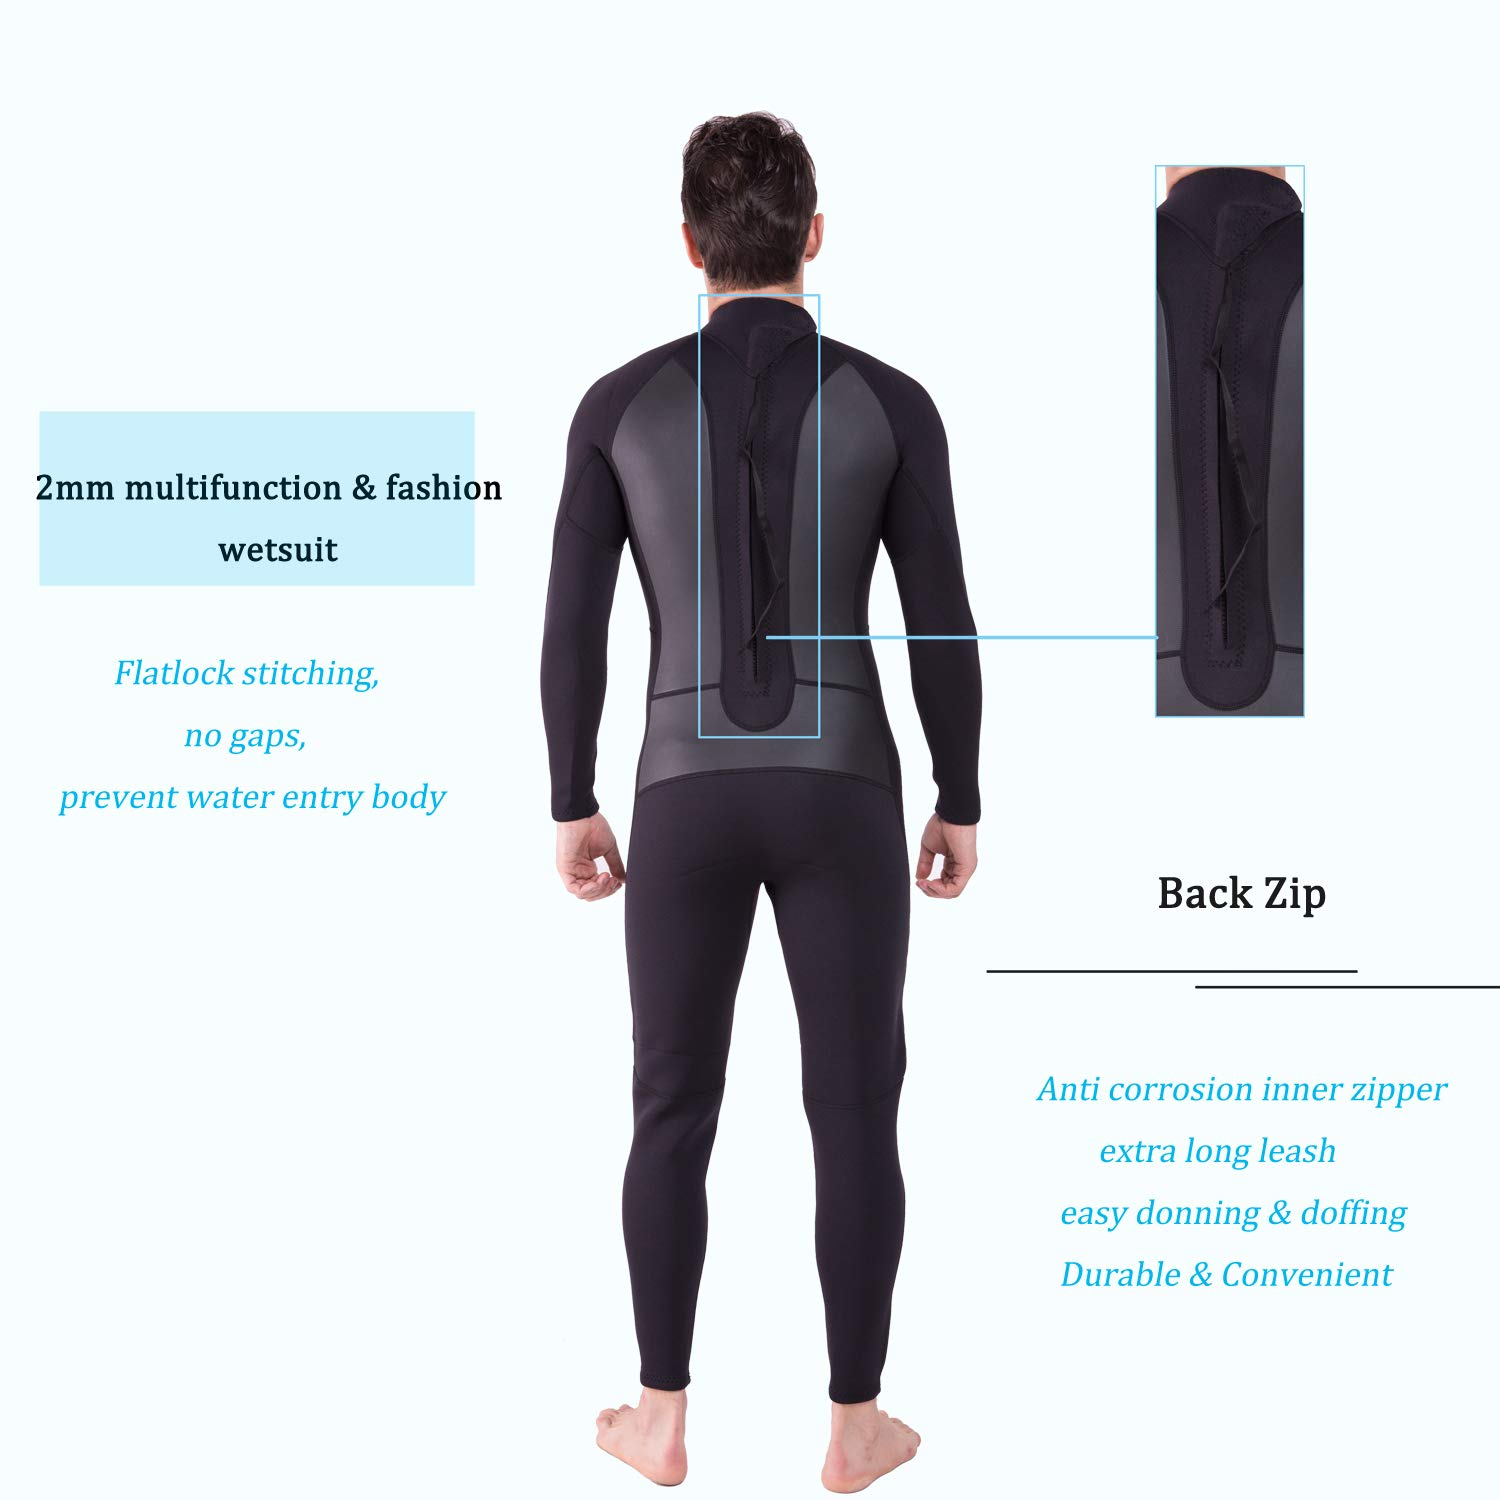 Realon Wetsuit Men Full 2mm Surfing Suit Diving Snorkeling Swimming Jumpsuit (2mm Black, Medium) by Realon (Image #4)